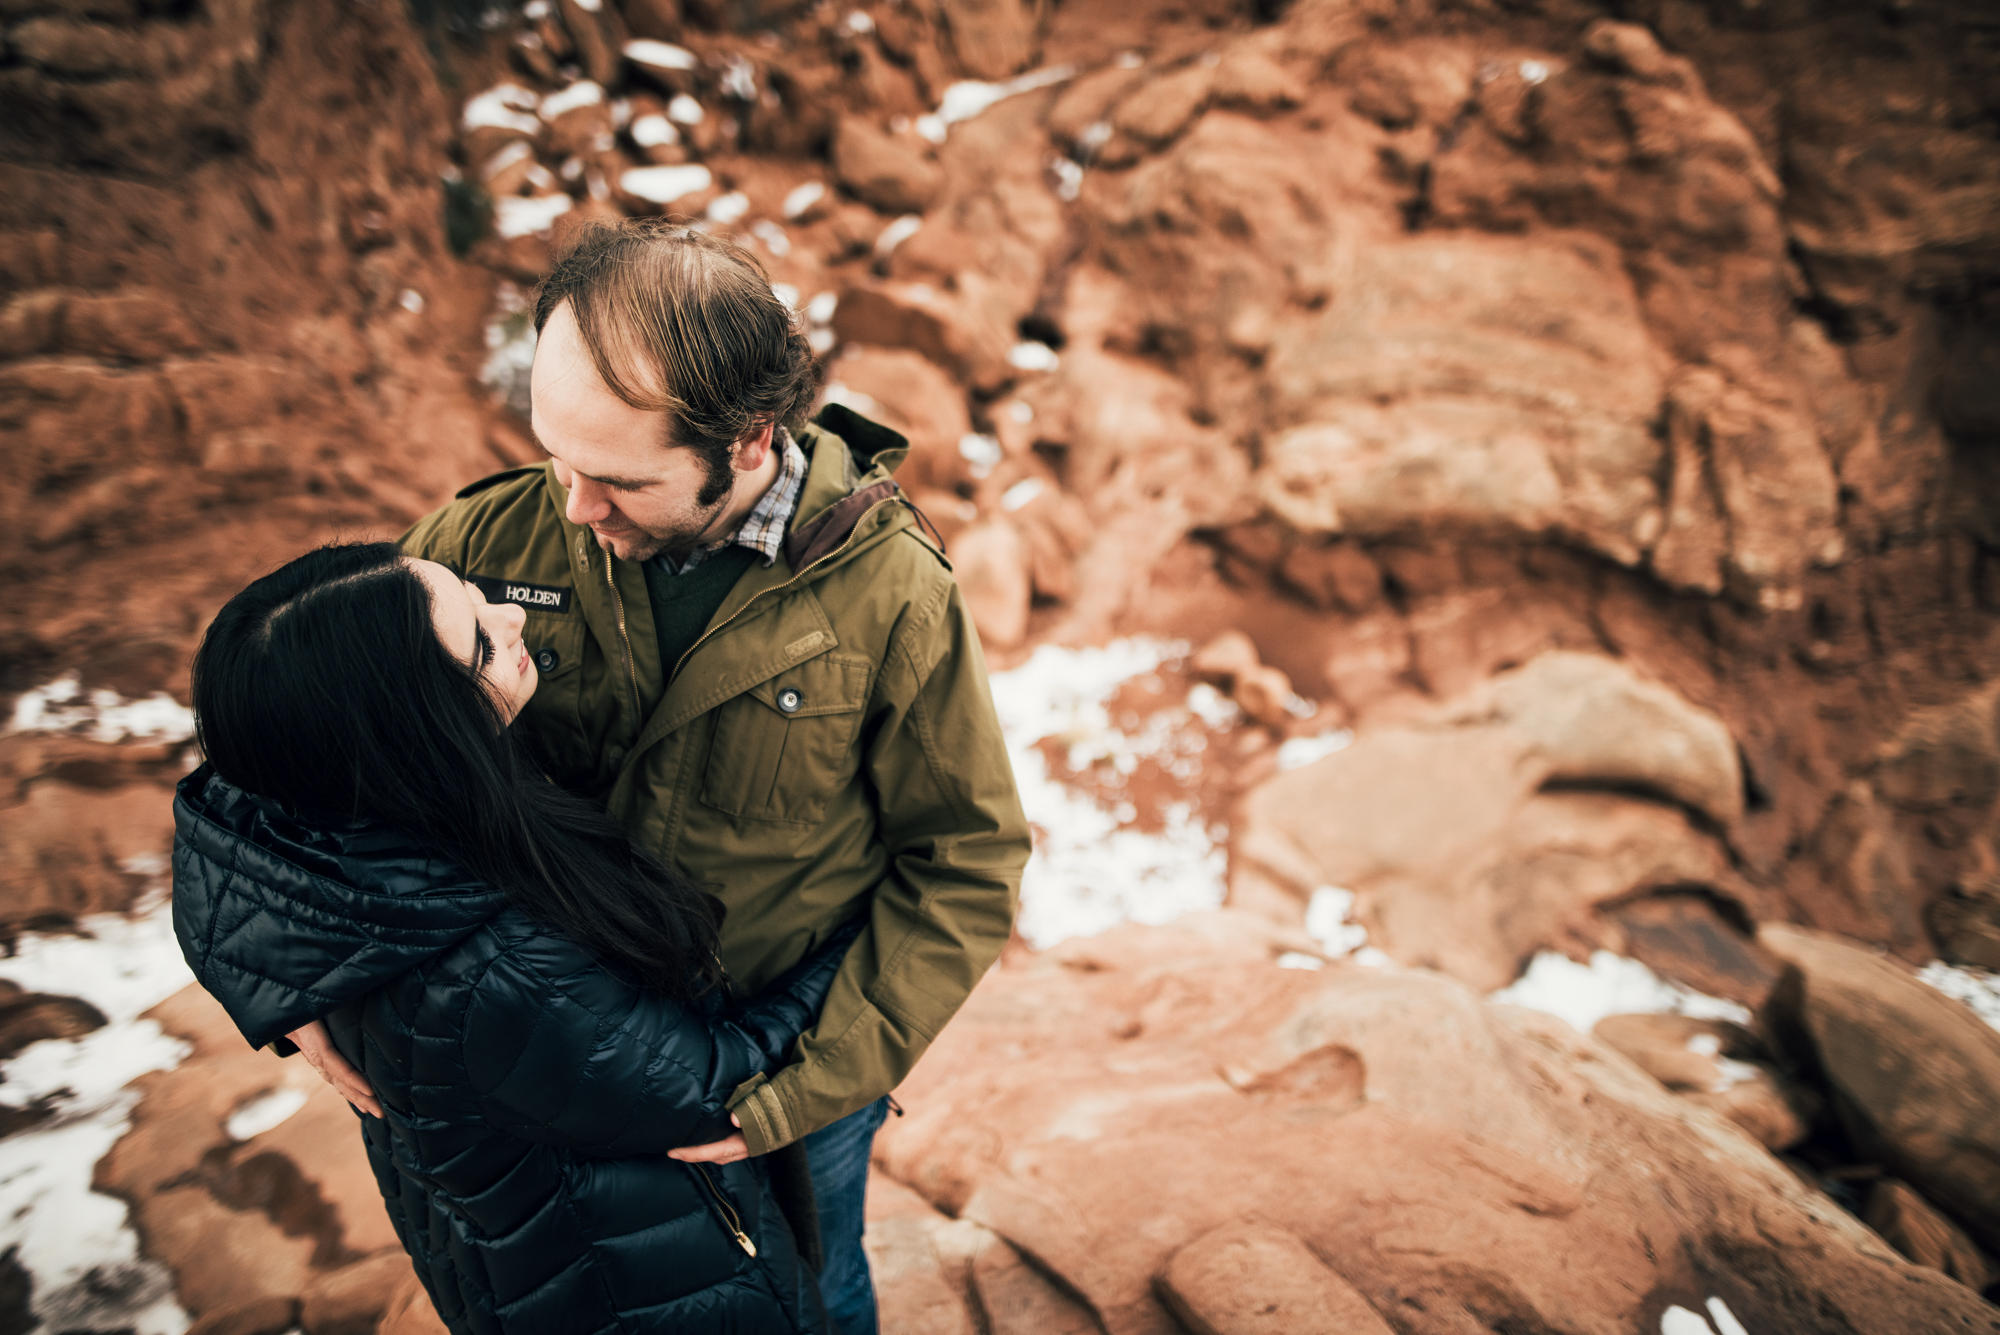 ©Isaiah & Taylor Photography - Arches National Park Adventure Engagement, Moab Utah-025.jpg